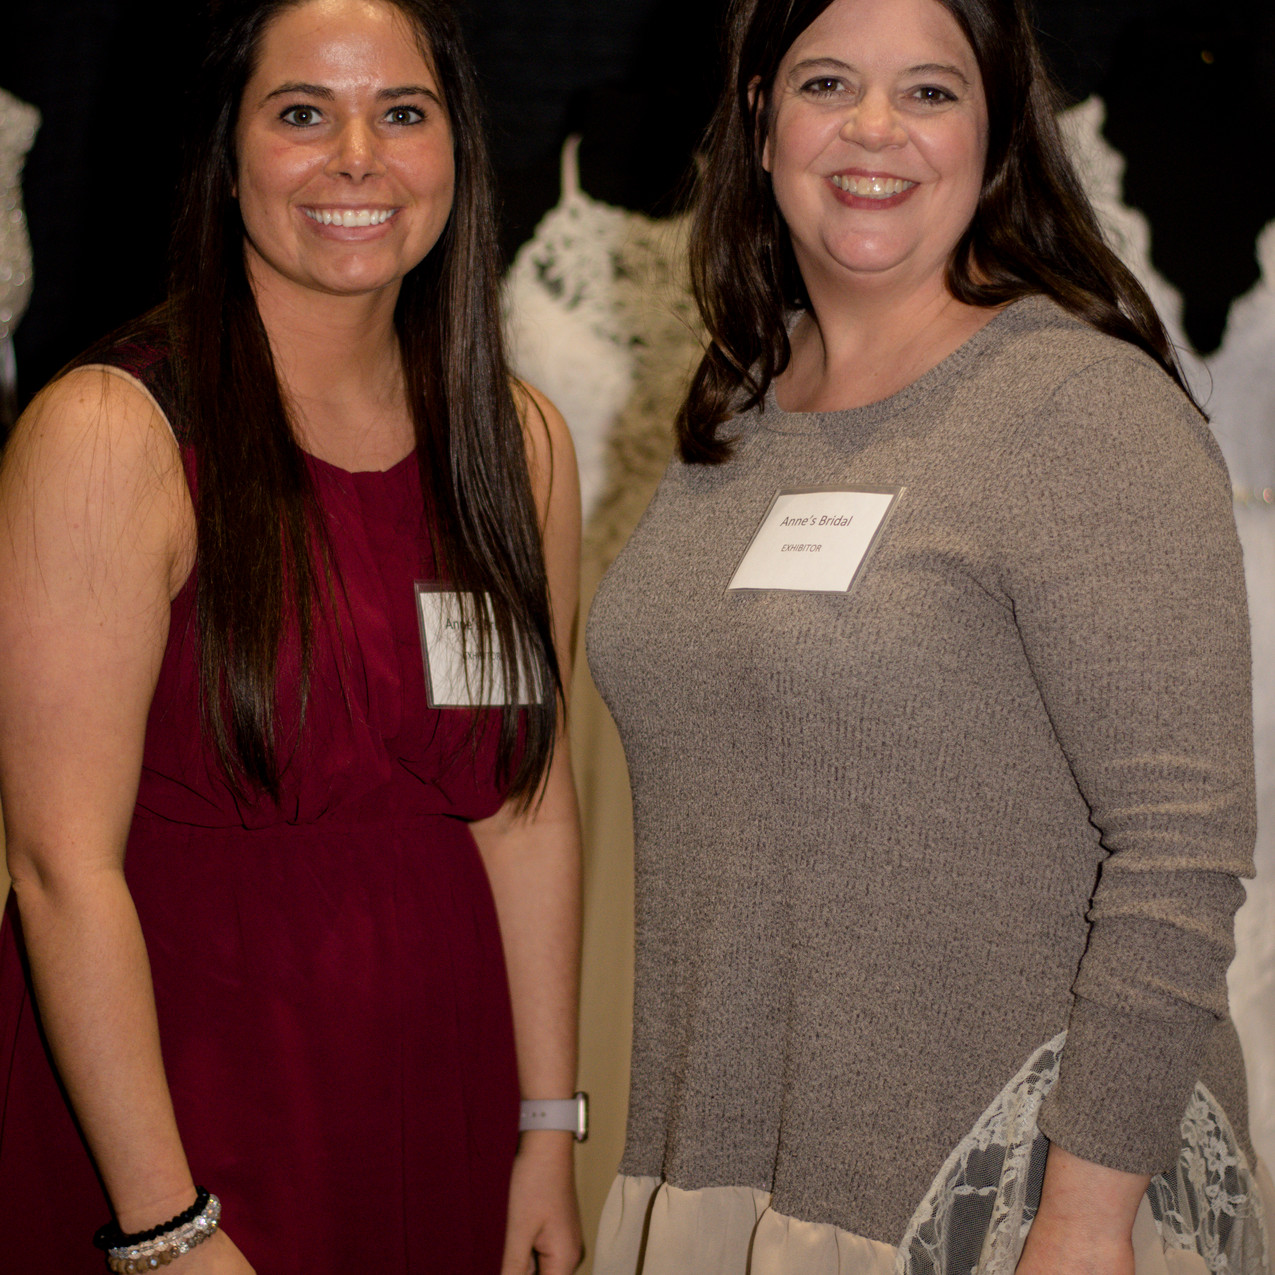 Jessica Wooley and Stephanie Byrd of Annes Bridals